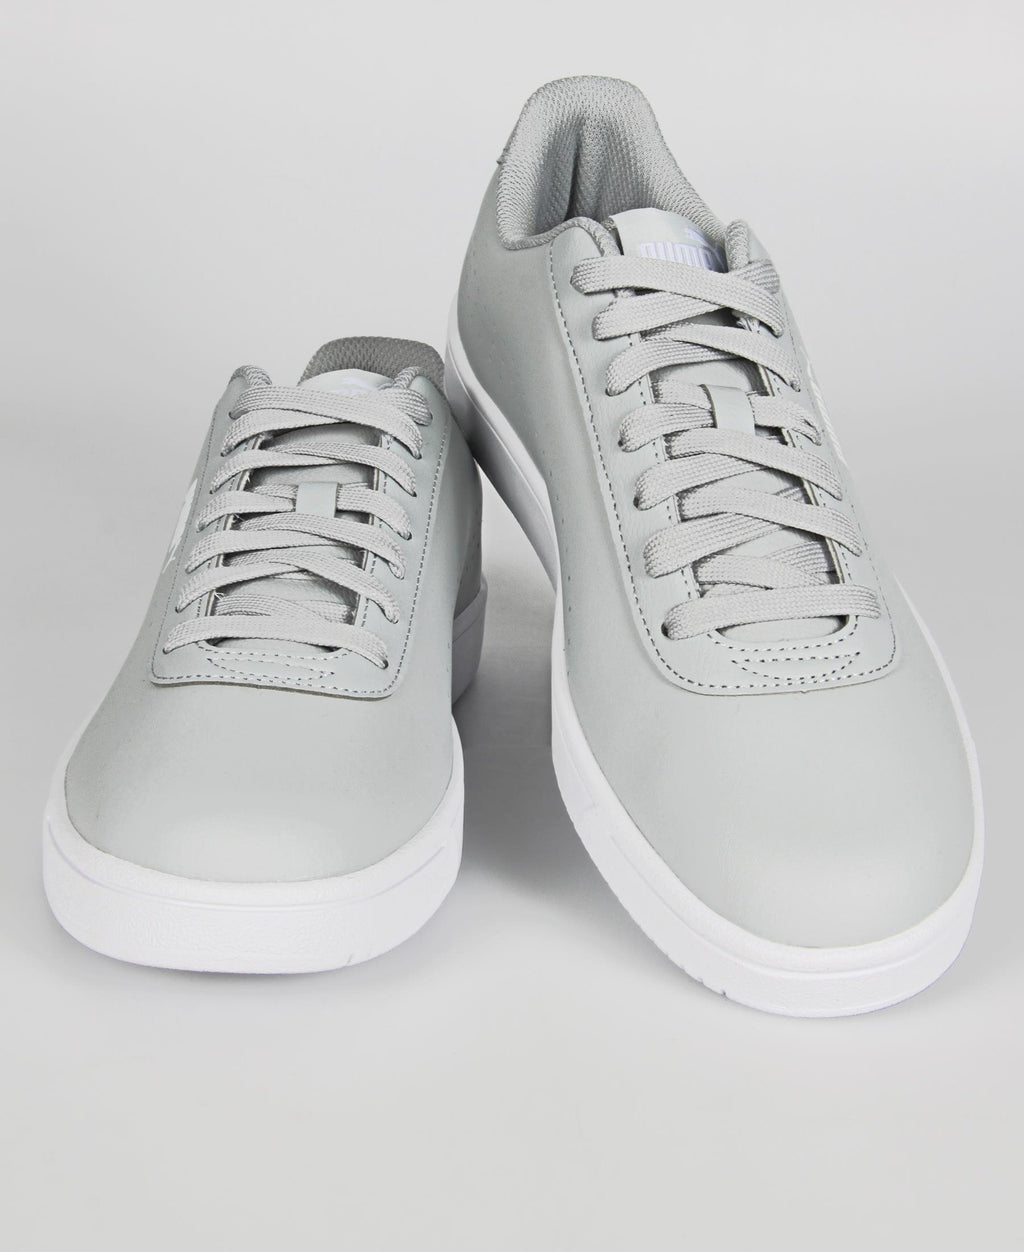 Men's Puma Court Pure Sneakers  - Grey